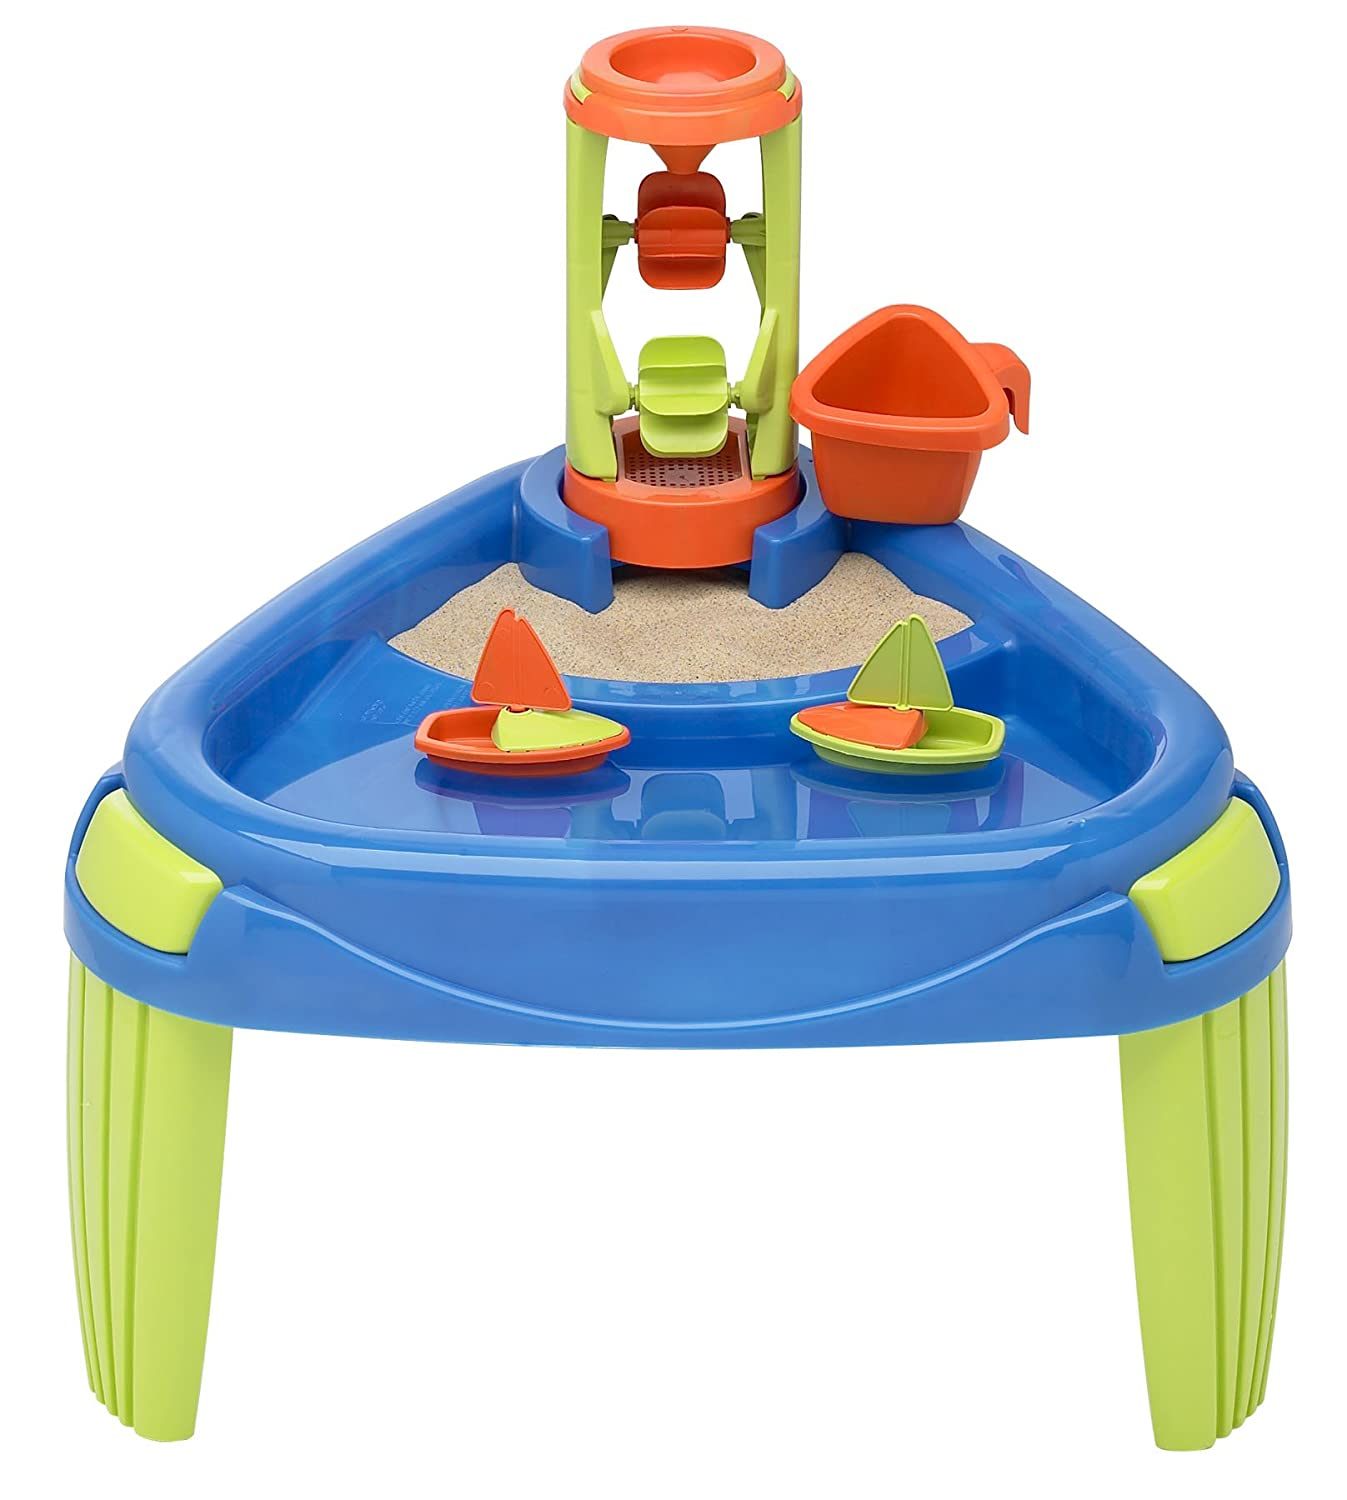 Amazon American Plastic Toy Water Wheel Play Table Toys & Games